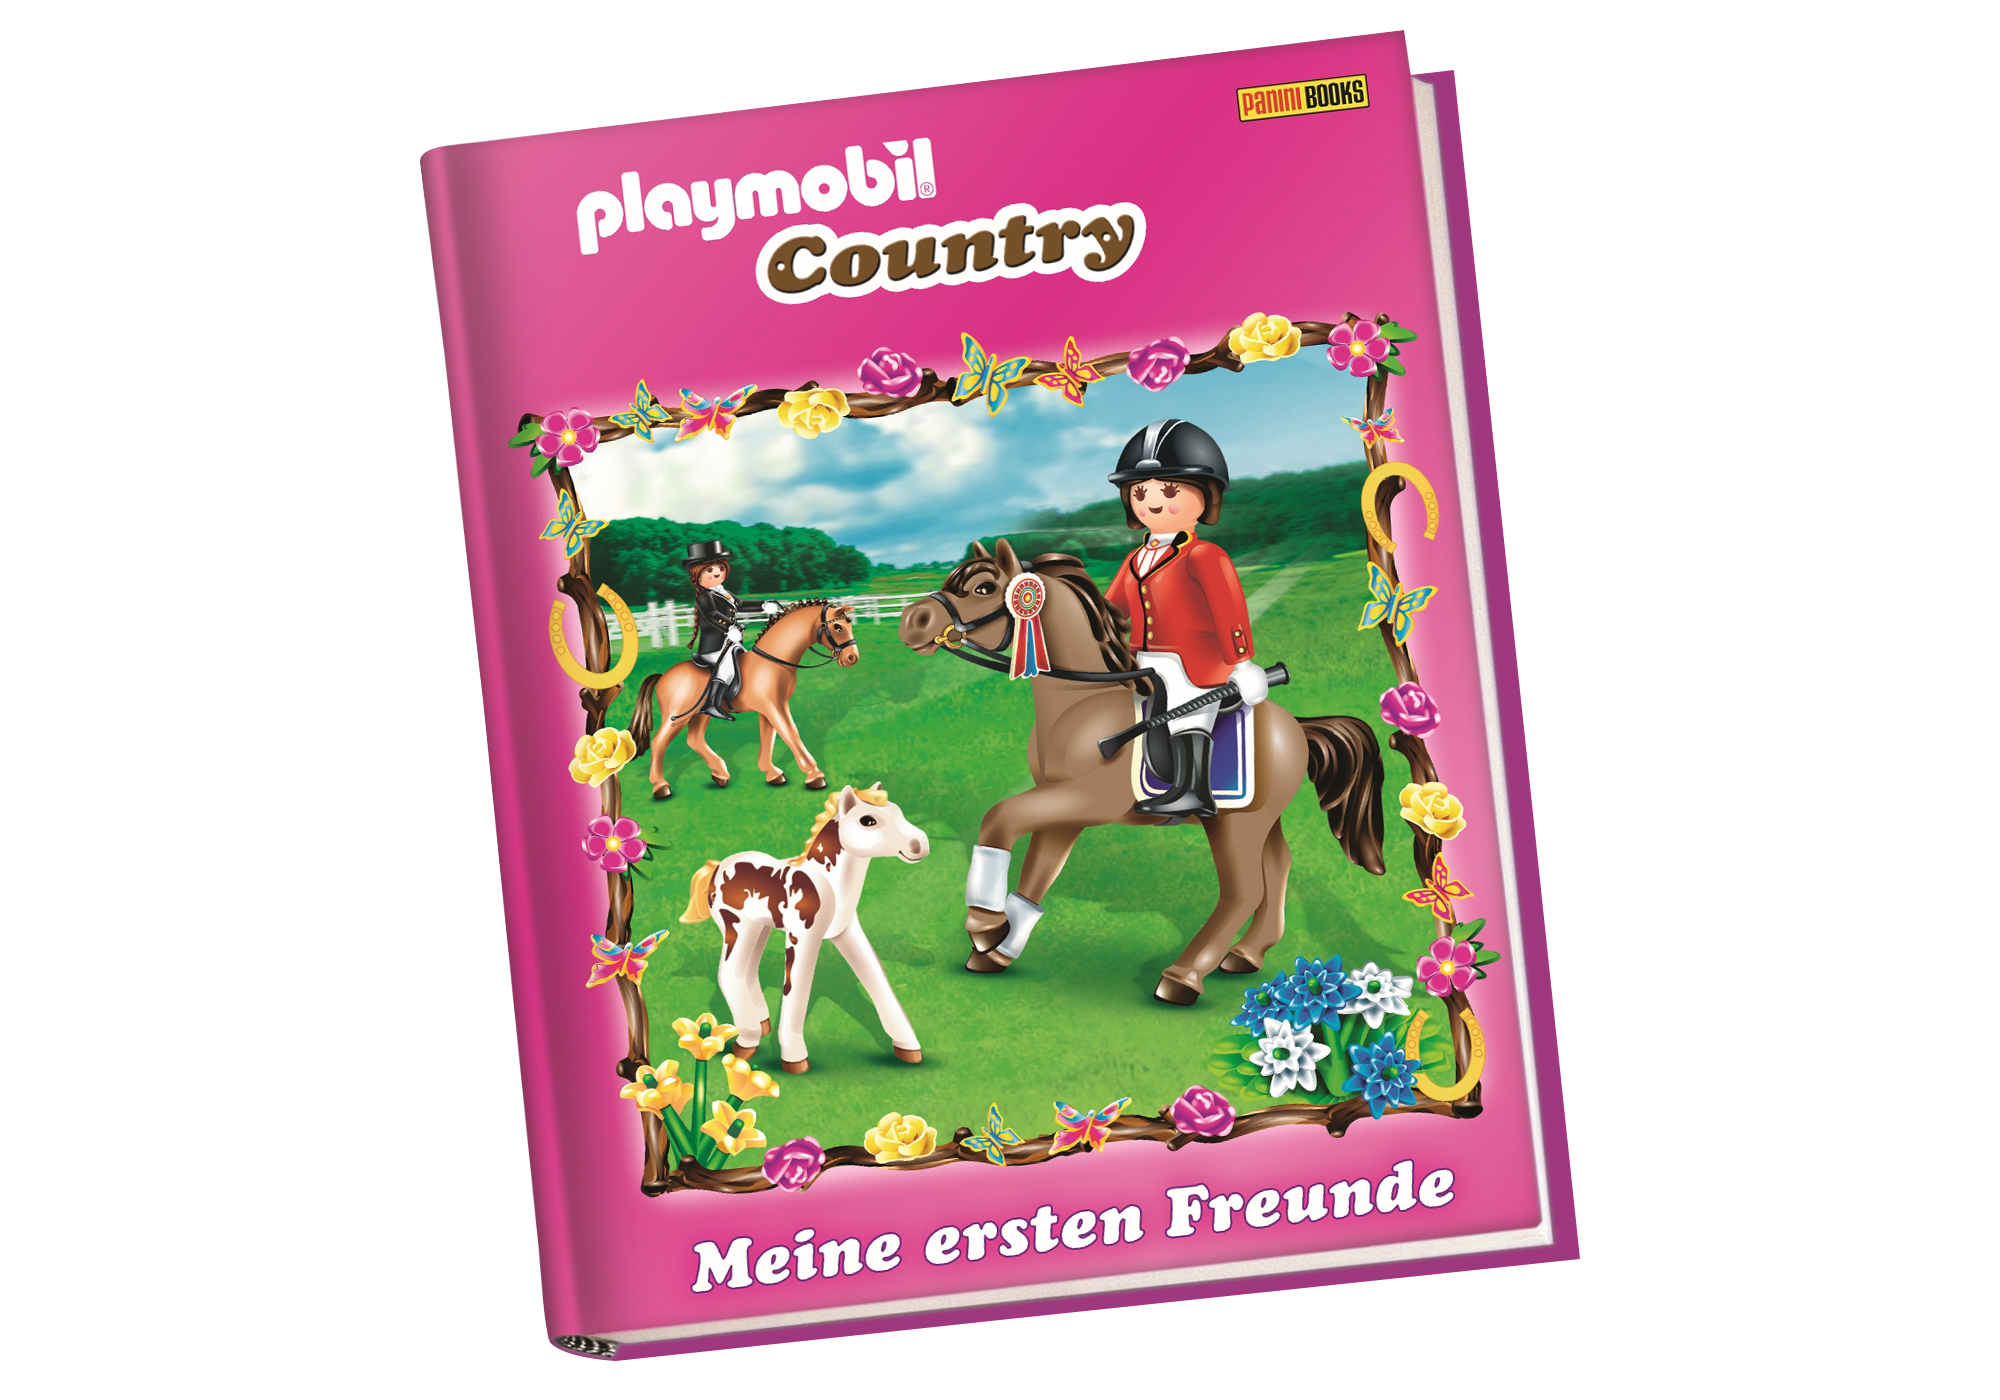 http://media.playmobil.com/i/playmobil/80377_product_detail